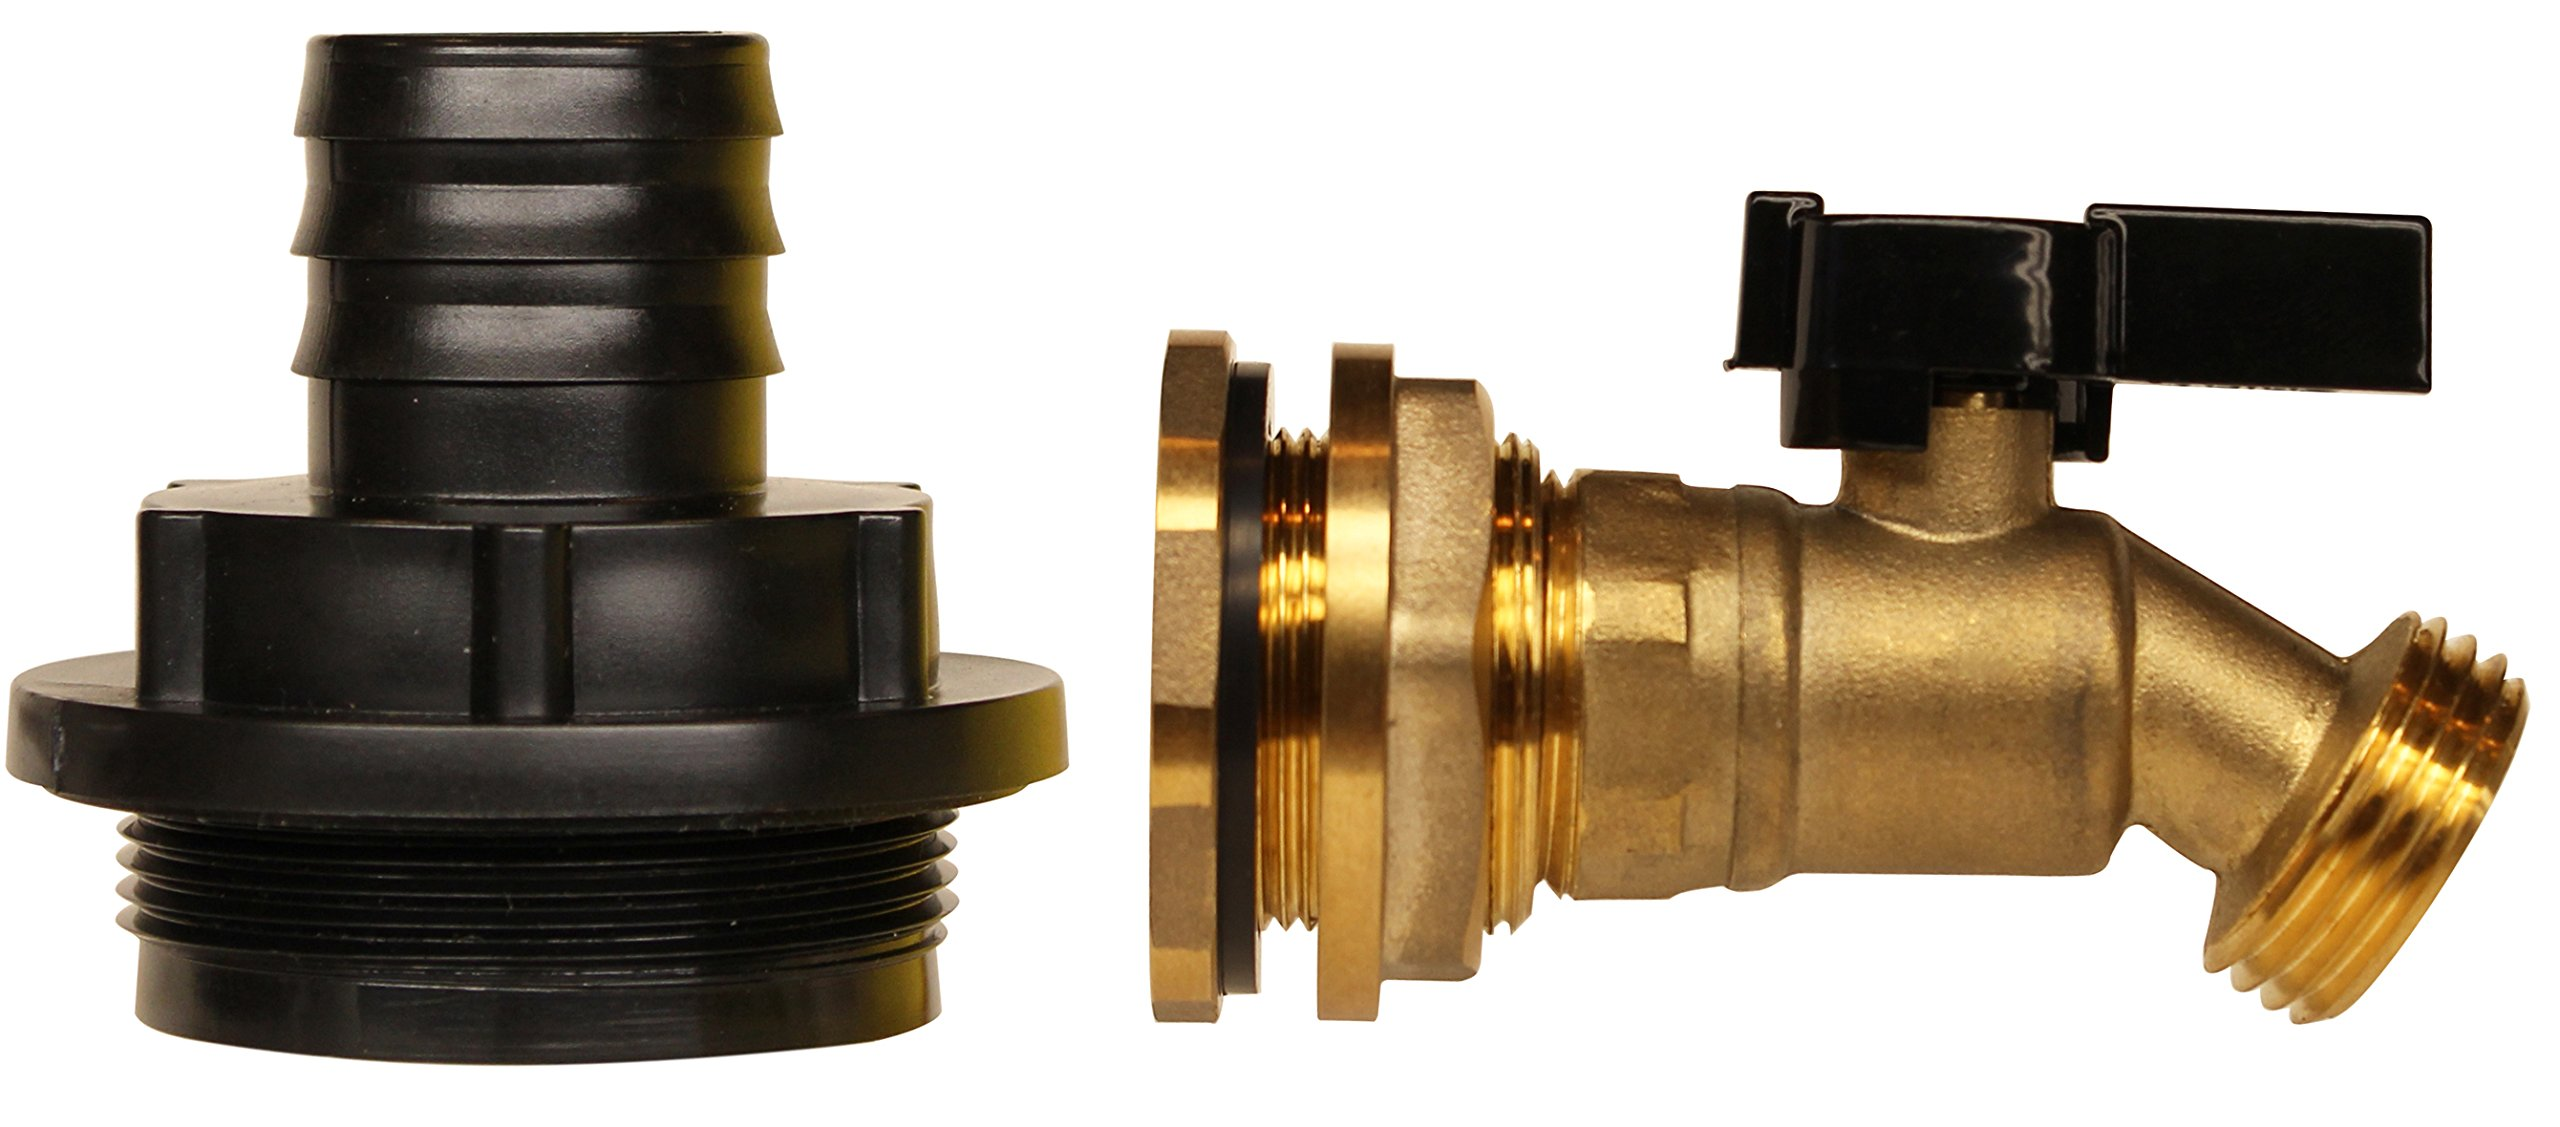 """RAINPAL RBIO125F Rain Barrel Inlet Outlet DIY Kit (HDPE Fine 2"""" Bung to 1-1/4"""" Barbed Fitting and Brass Ball Valve Spigot w/Bulkhead Fitting)"""